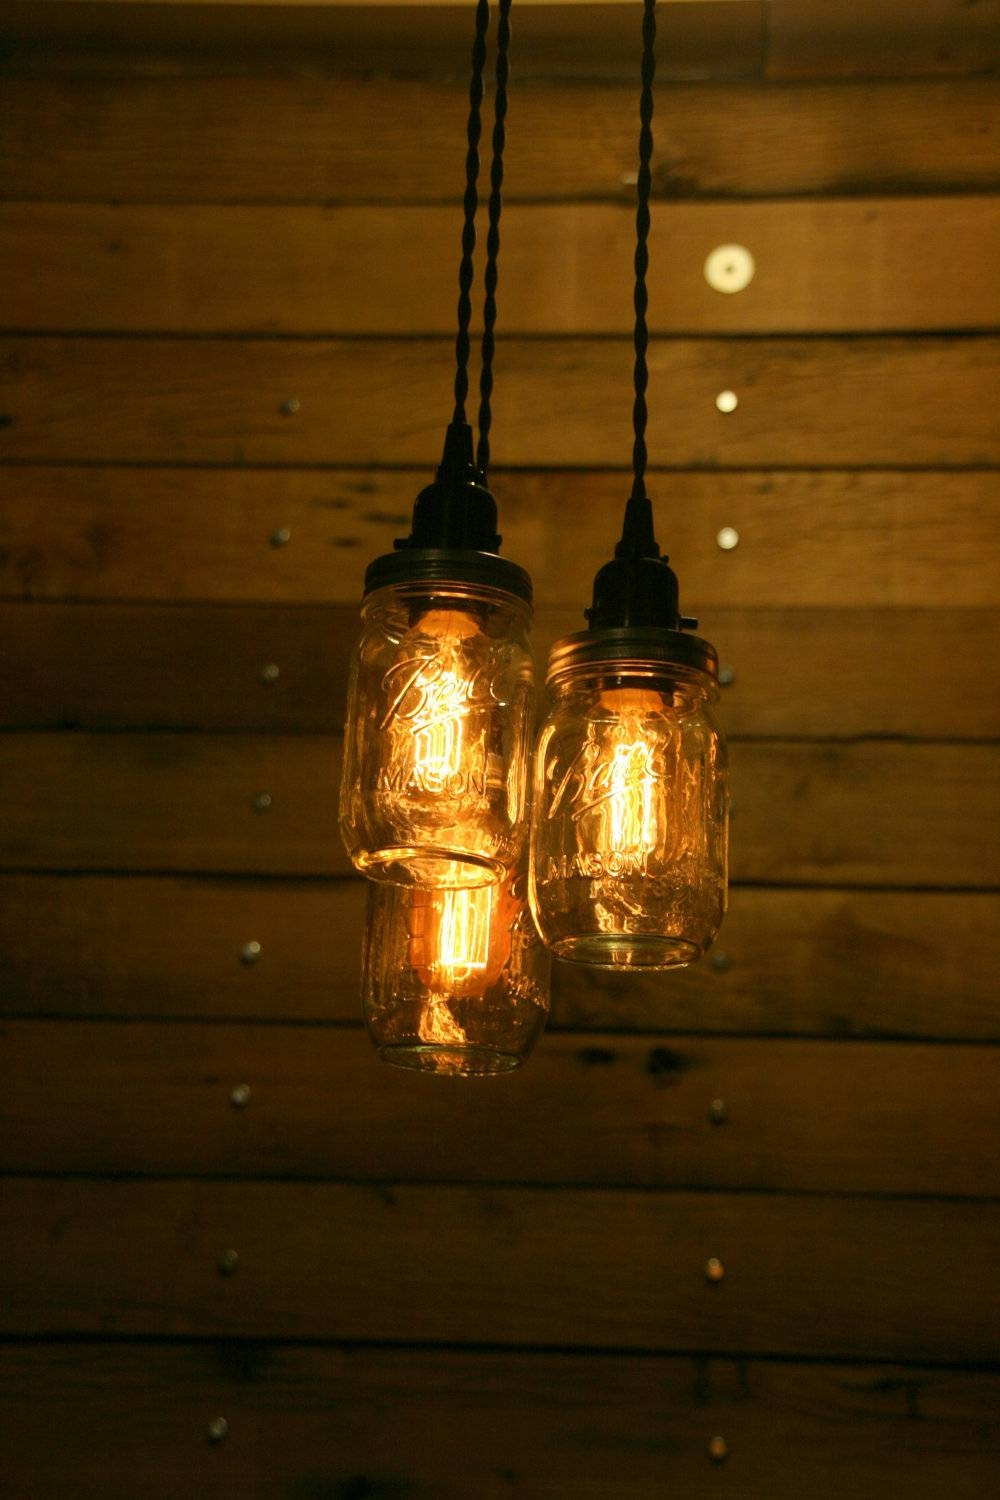 On Sale 3 Pint Jar Pendant Light Mason Jar Chandelier Light intended for Mason Jar Pendant Lights for Sale (Image 10 of 15)